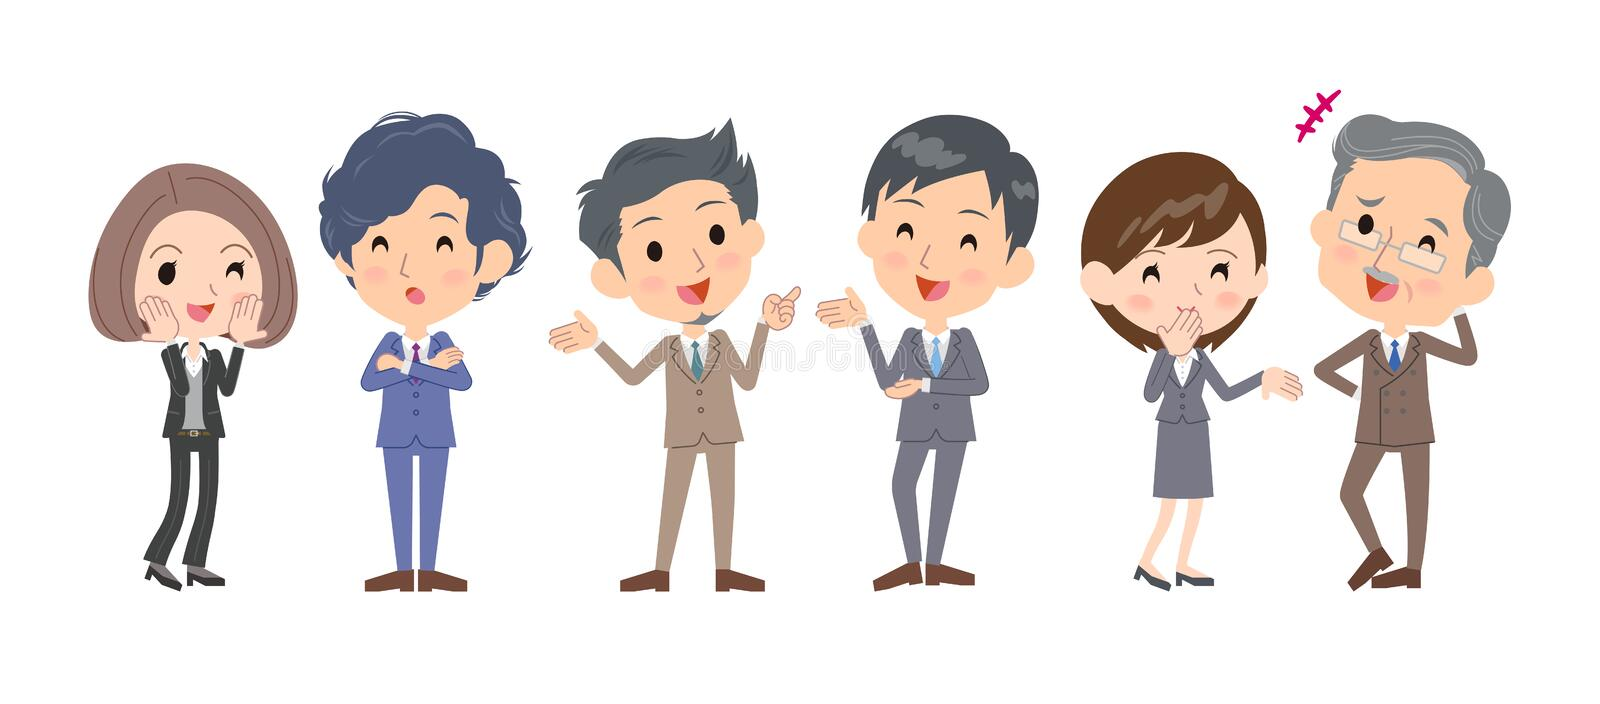 Business people_communication Side by side royalty free illustration